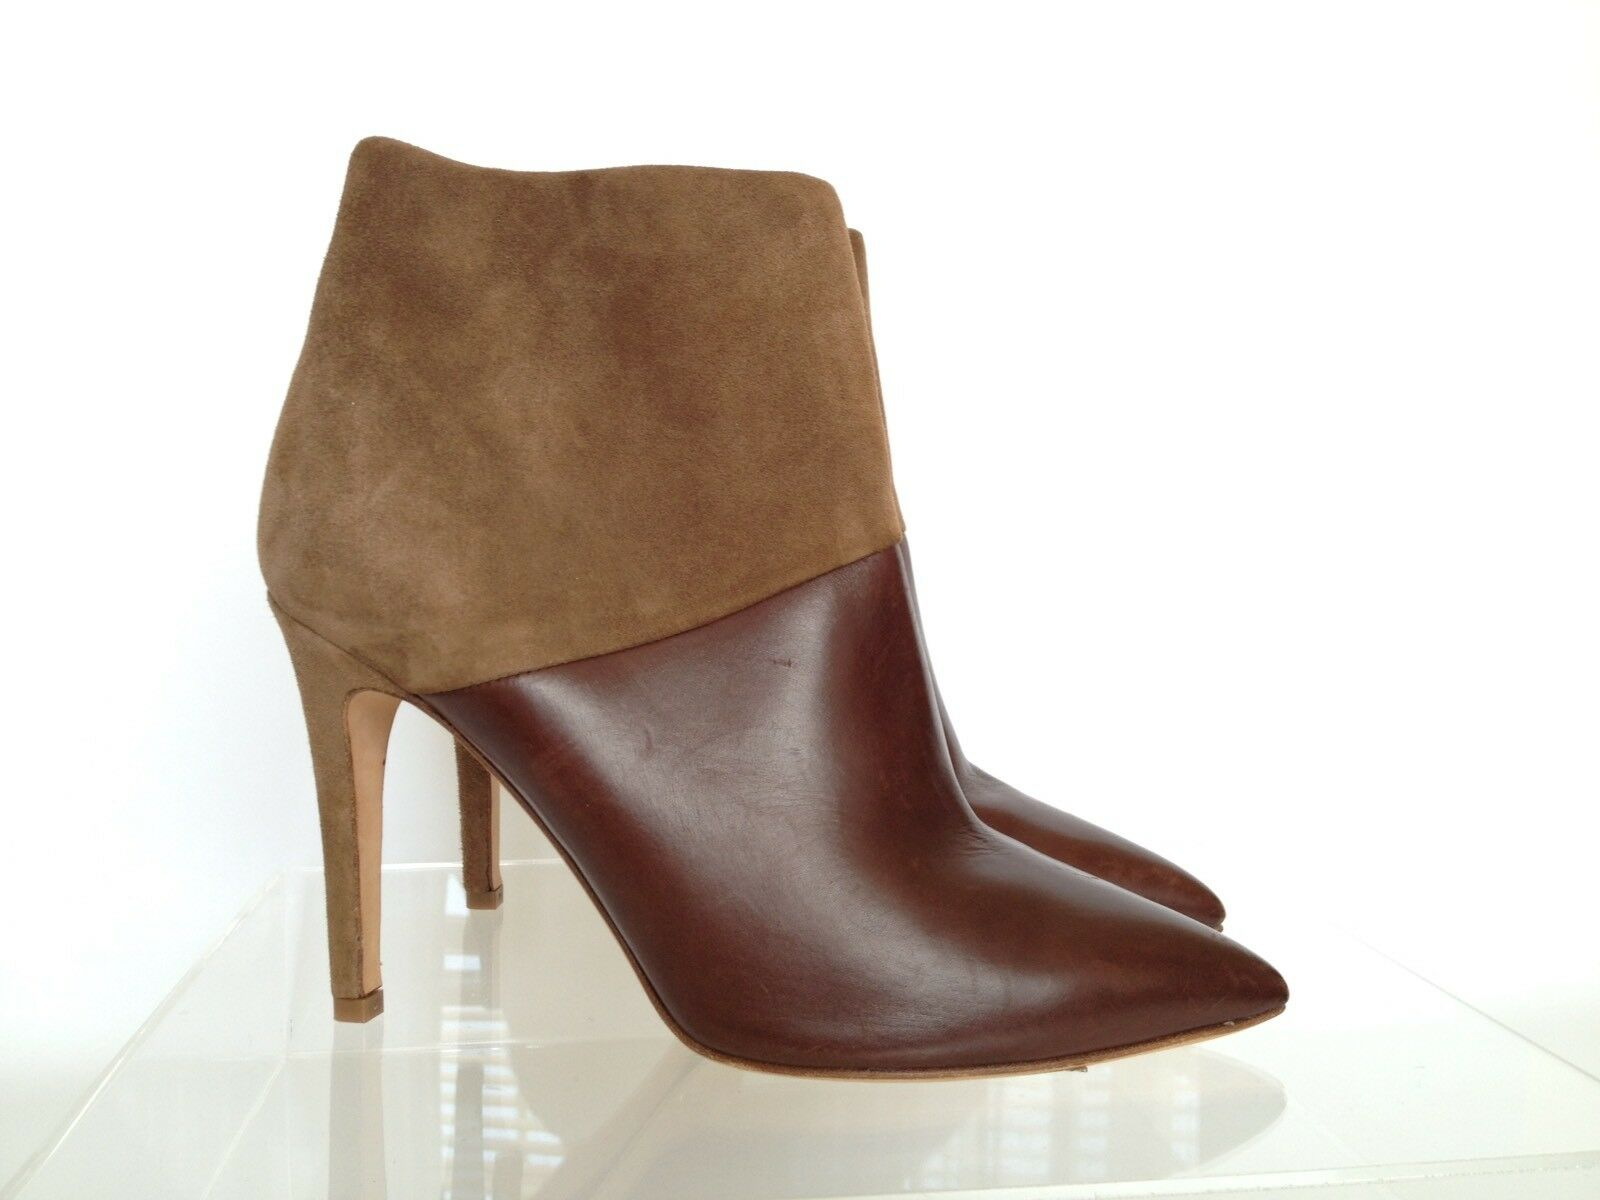 J.CREW Leather and Suede Ankle Boots Hight Heel 7 Brown 02973  375